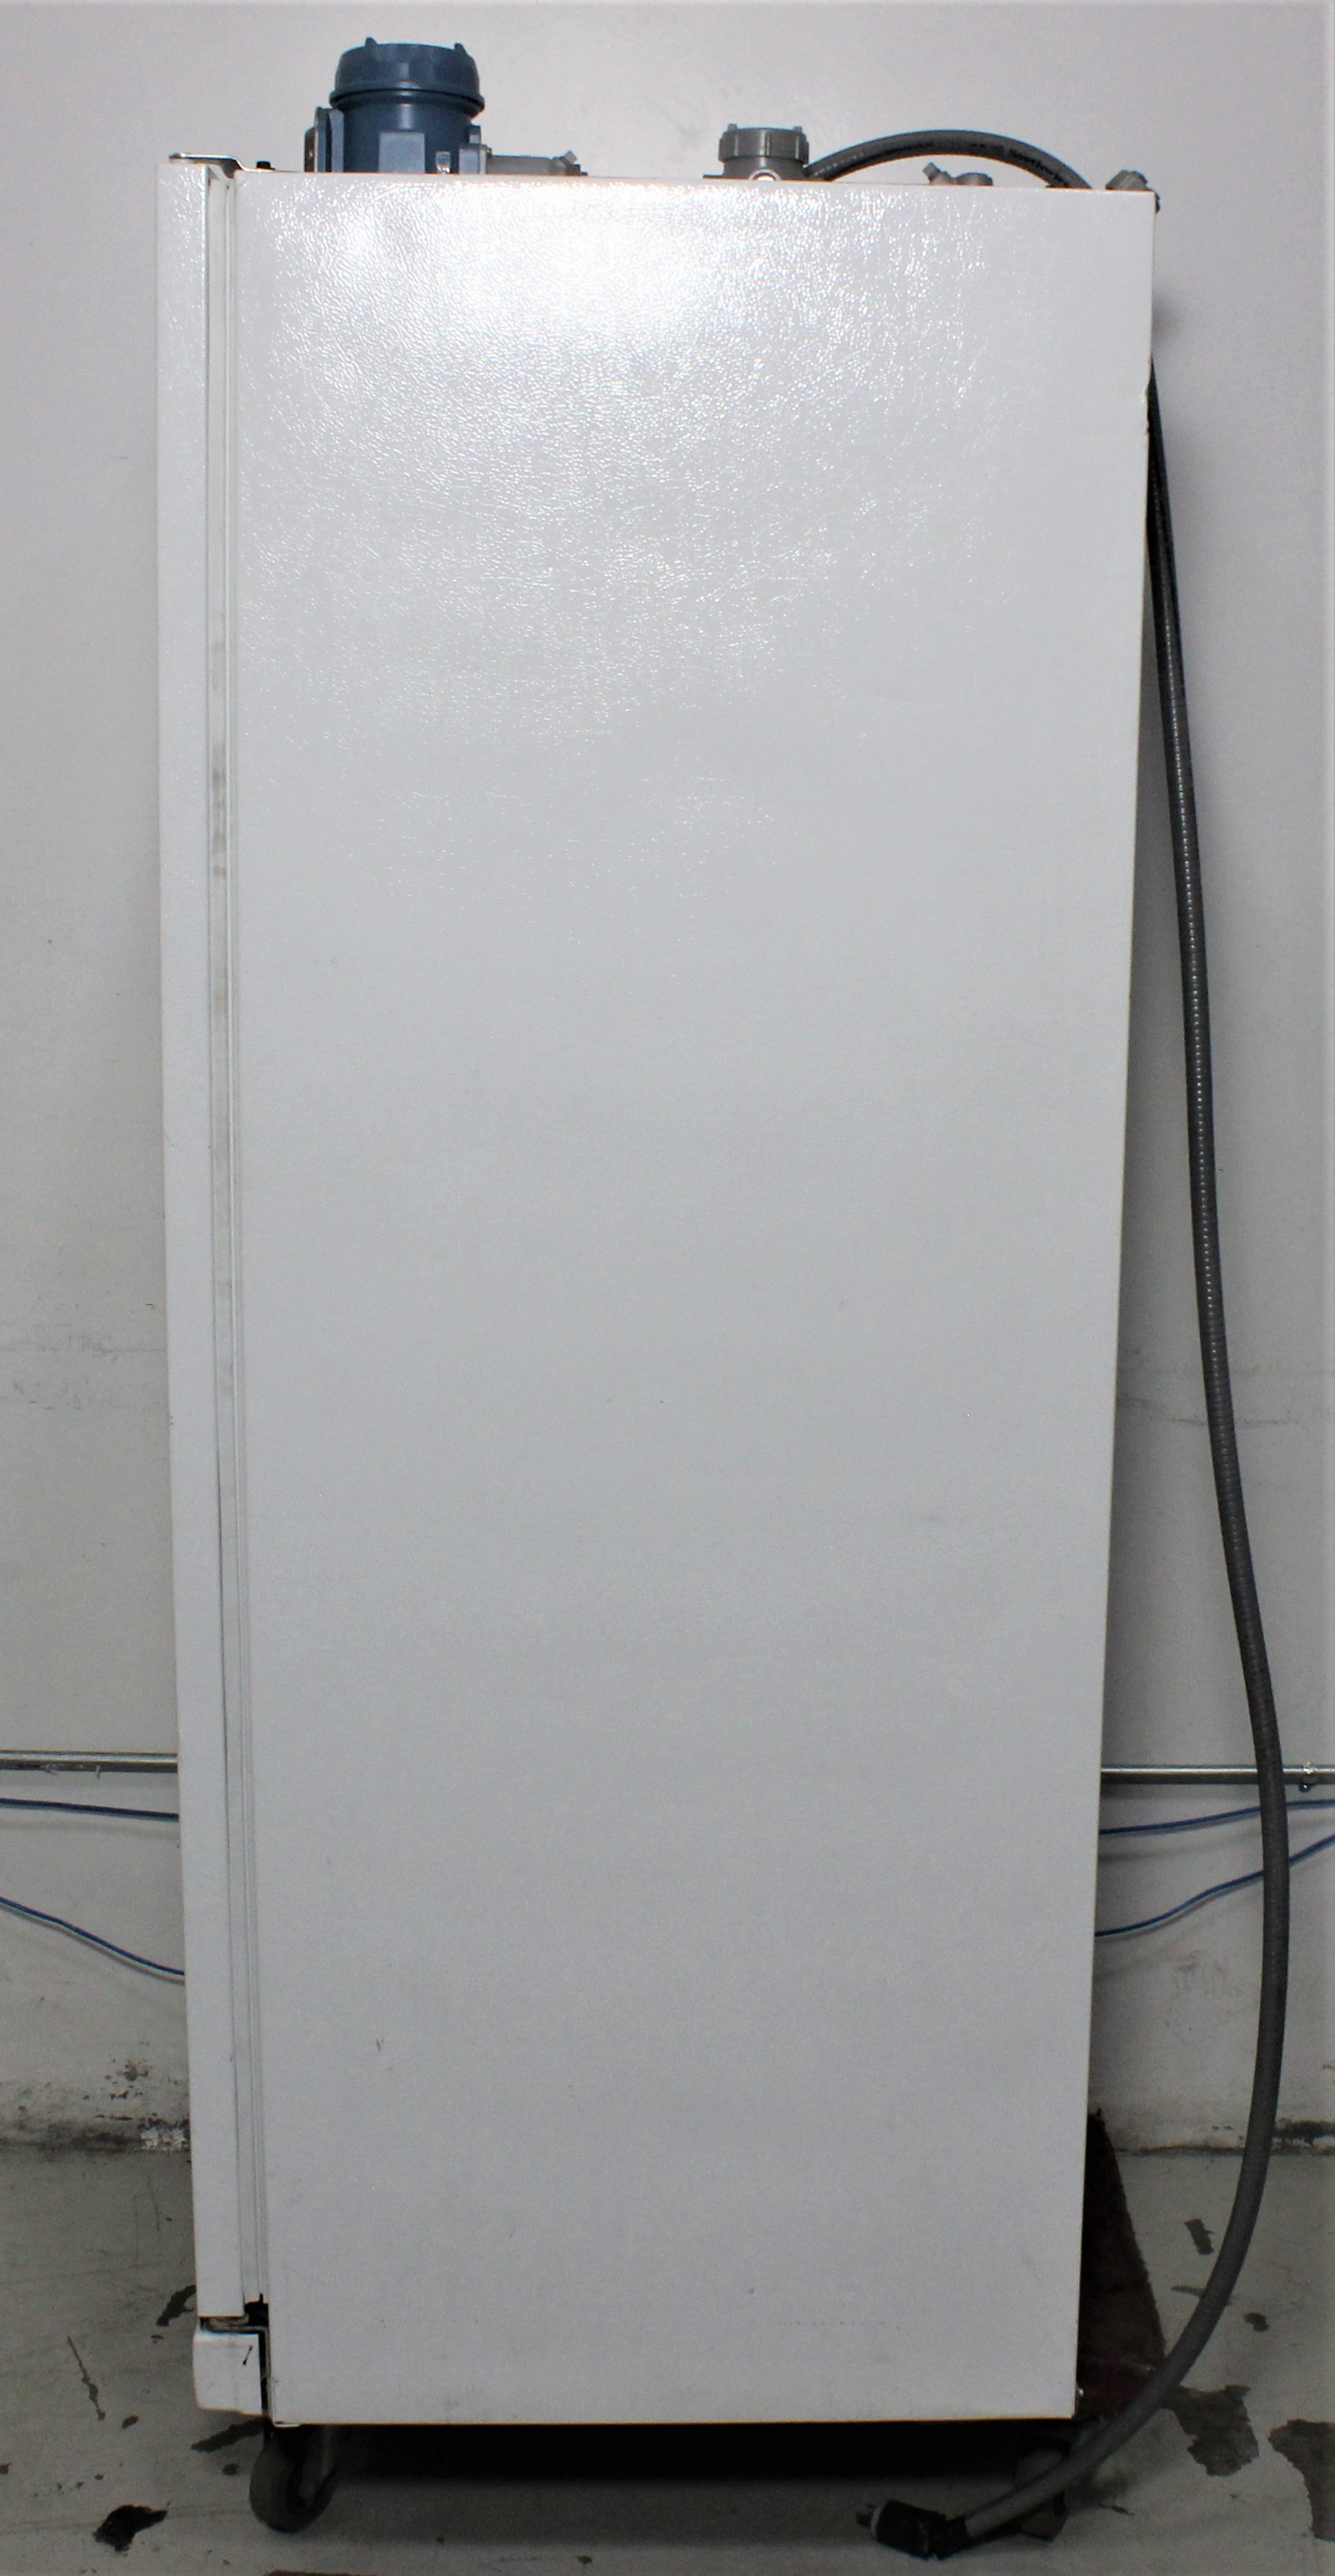 Image 20 Cu. Ft. FISHER SCIENTIFIC Isotemp Explosion-Proof Refrigerator 1587229